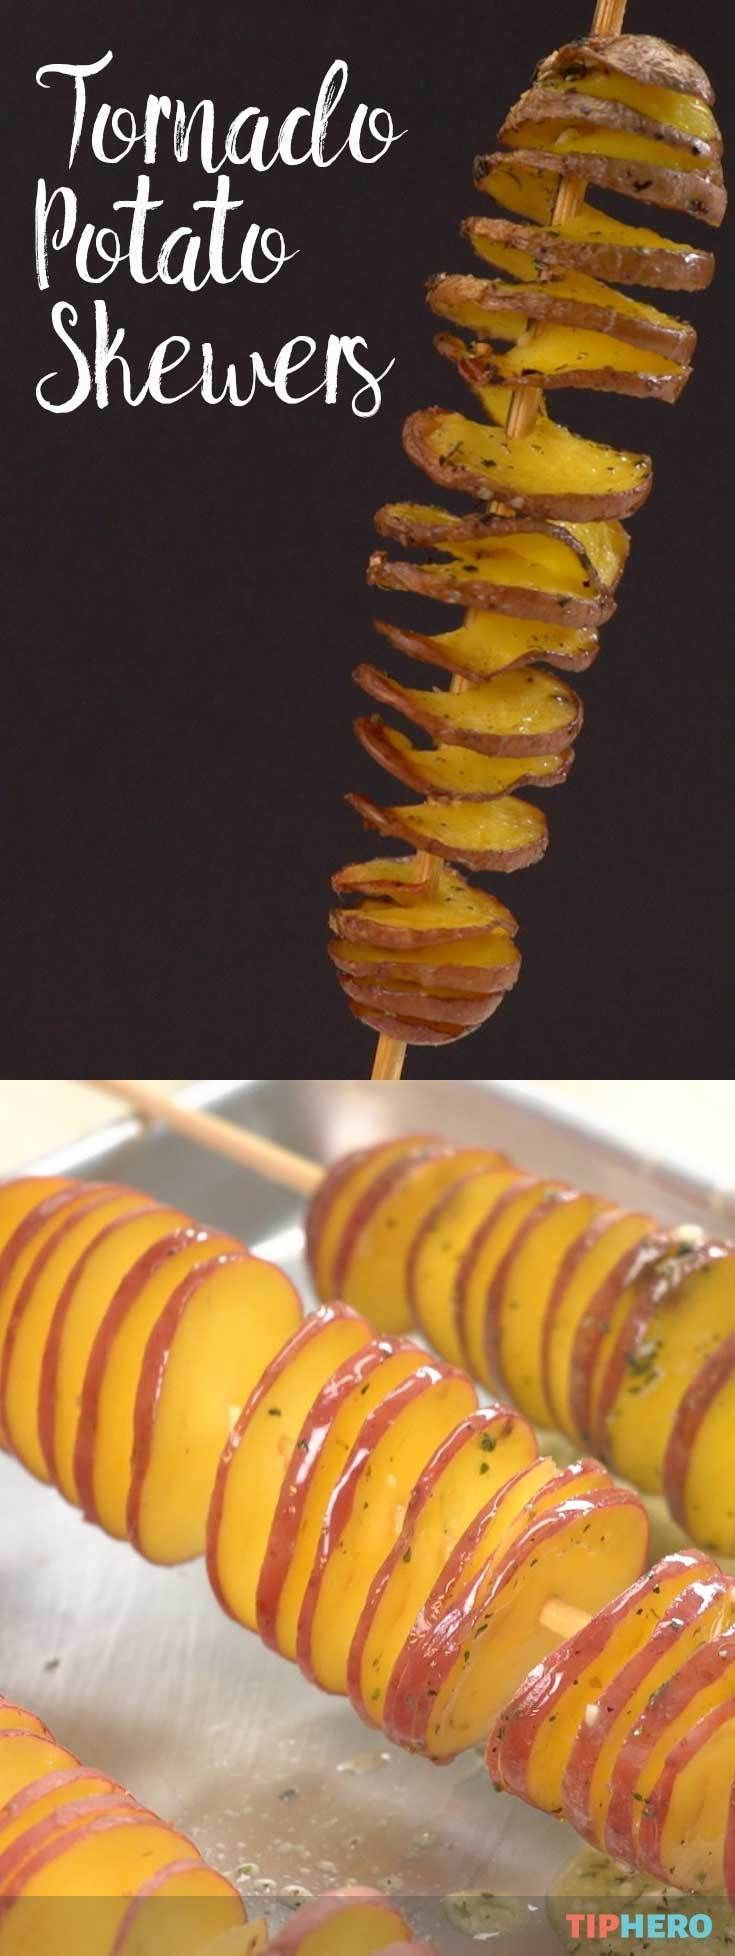 Perhaps the coolest way to bake up a potato! You've got to try these Tornado Potato Skewers! With a mix of herbs, butter and cheese  they are as delicious as they are fun to eat. Click for the video and recipe and enjoy!